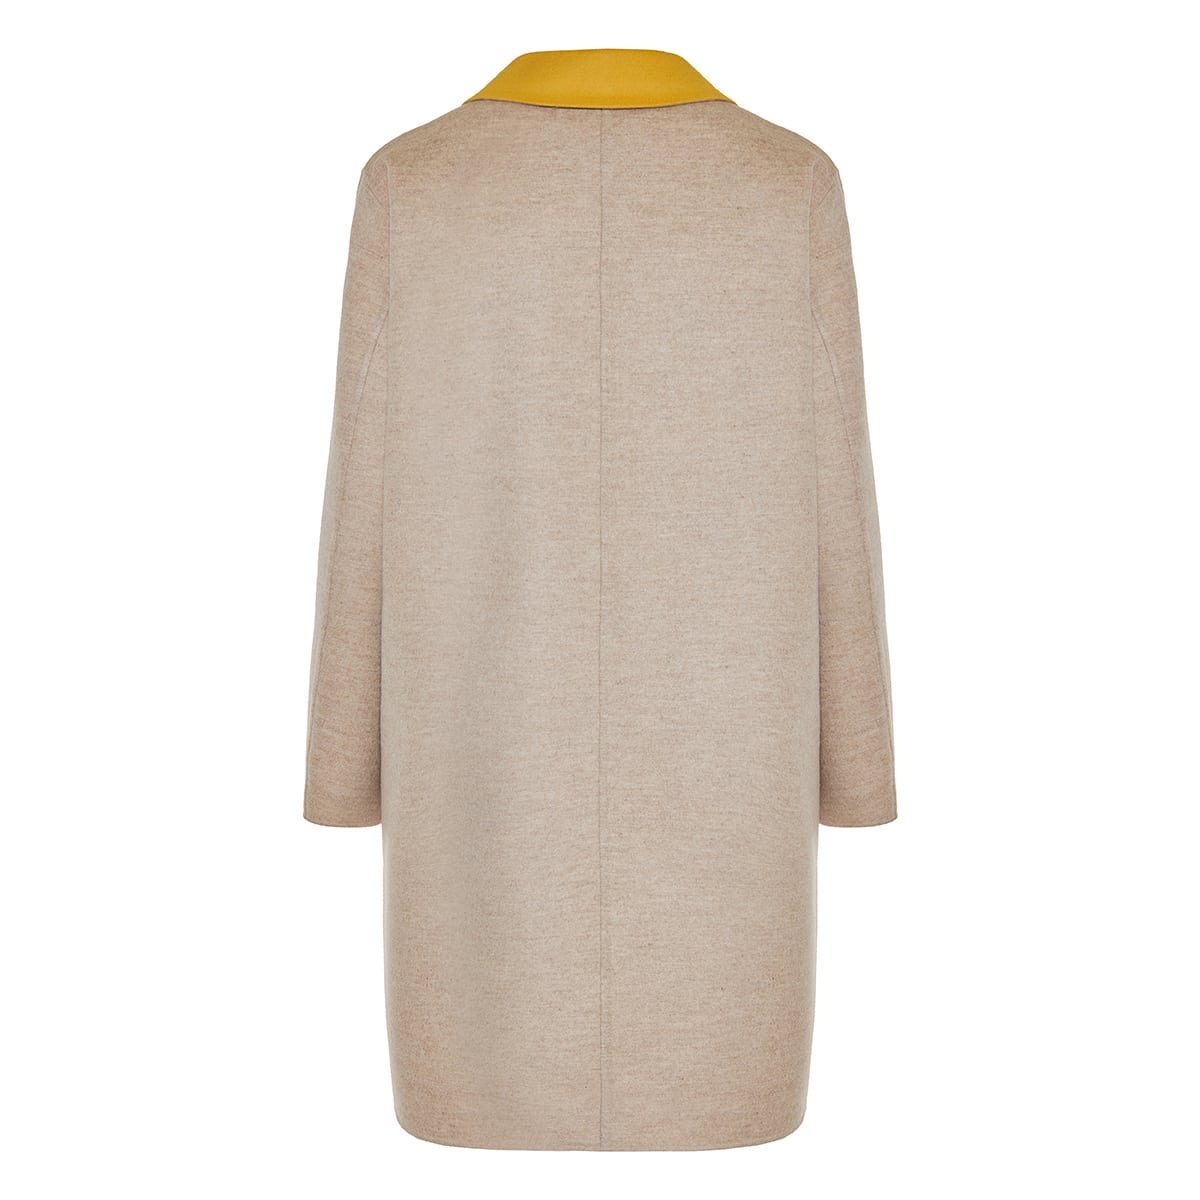 Two-tone single-breasted wool coat